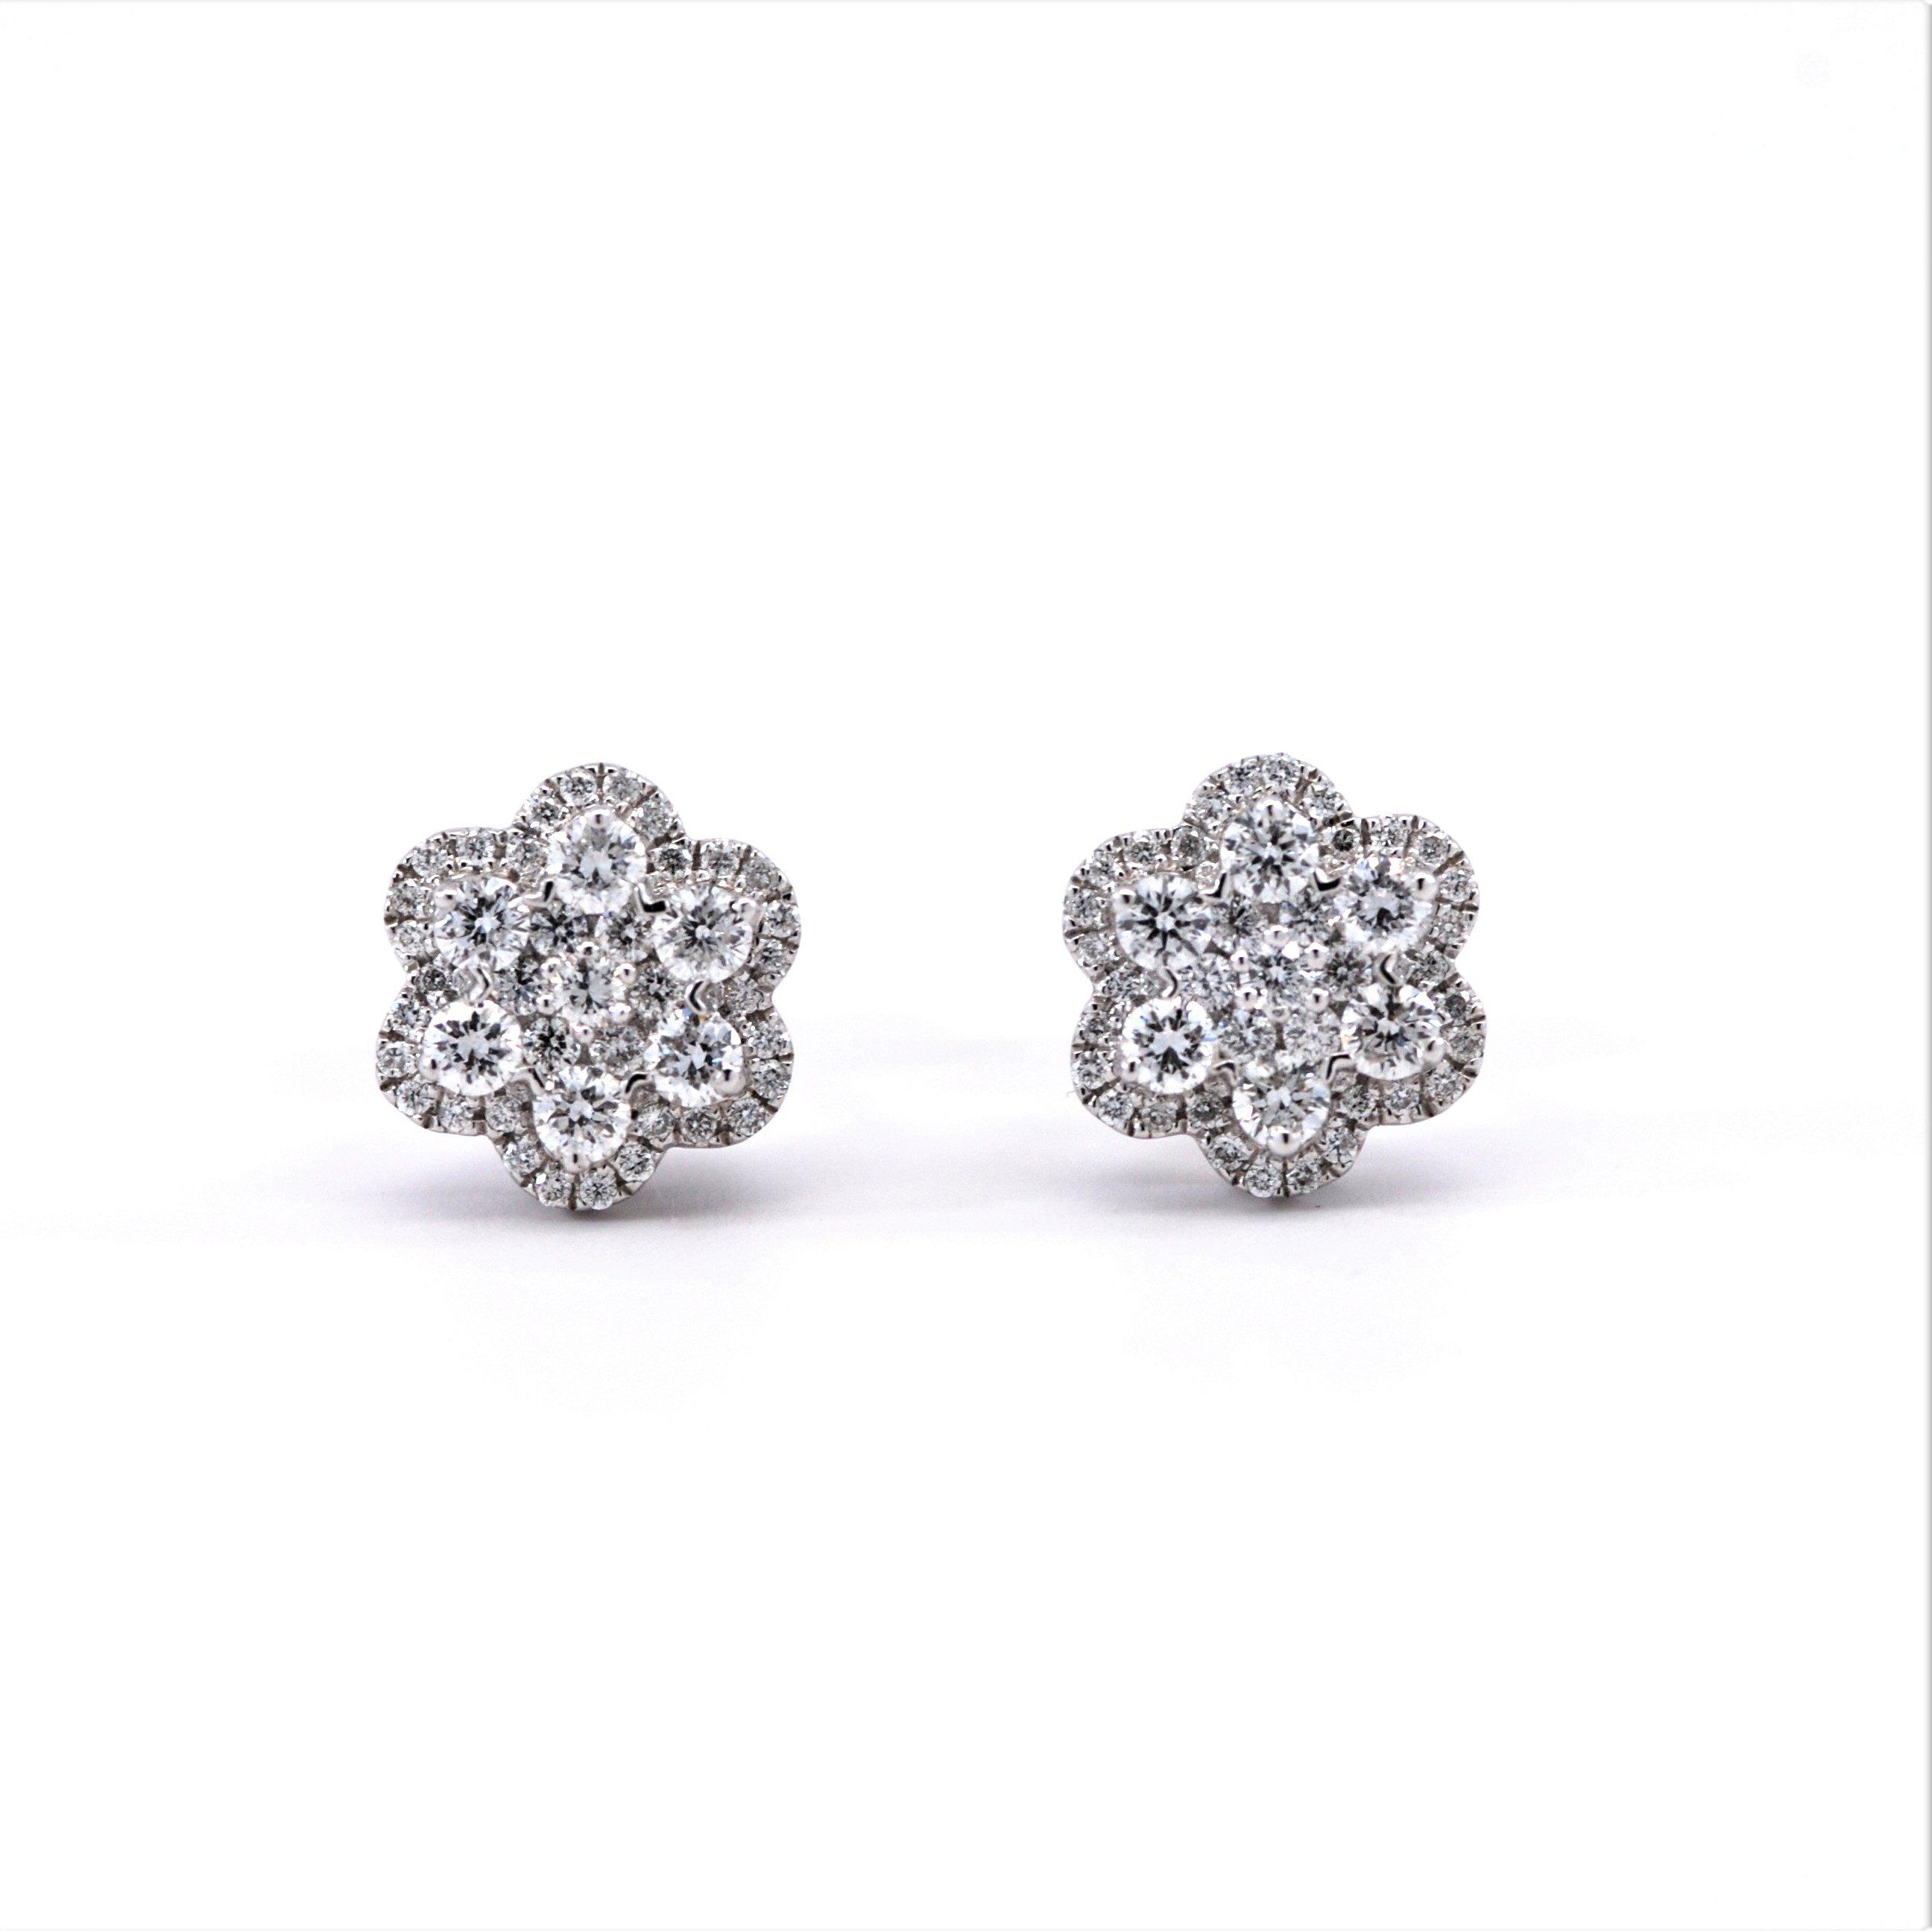 studs earrings antique hand diamond products cut vintage stud fetheray earring blingtastic